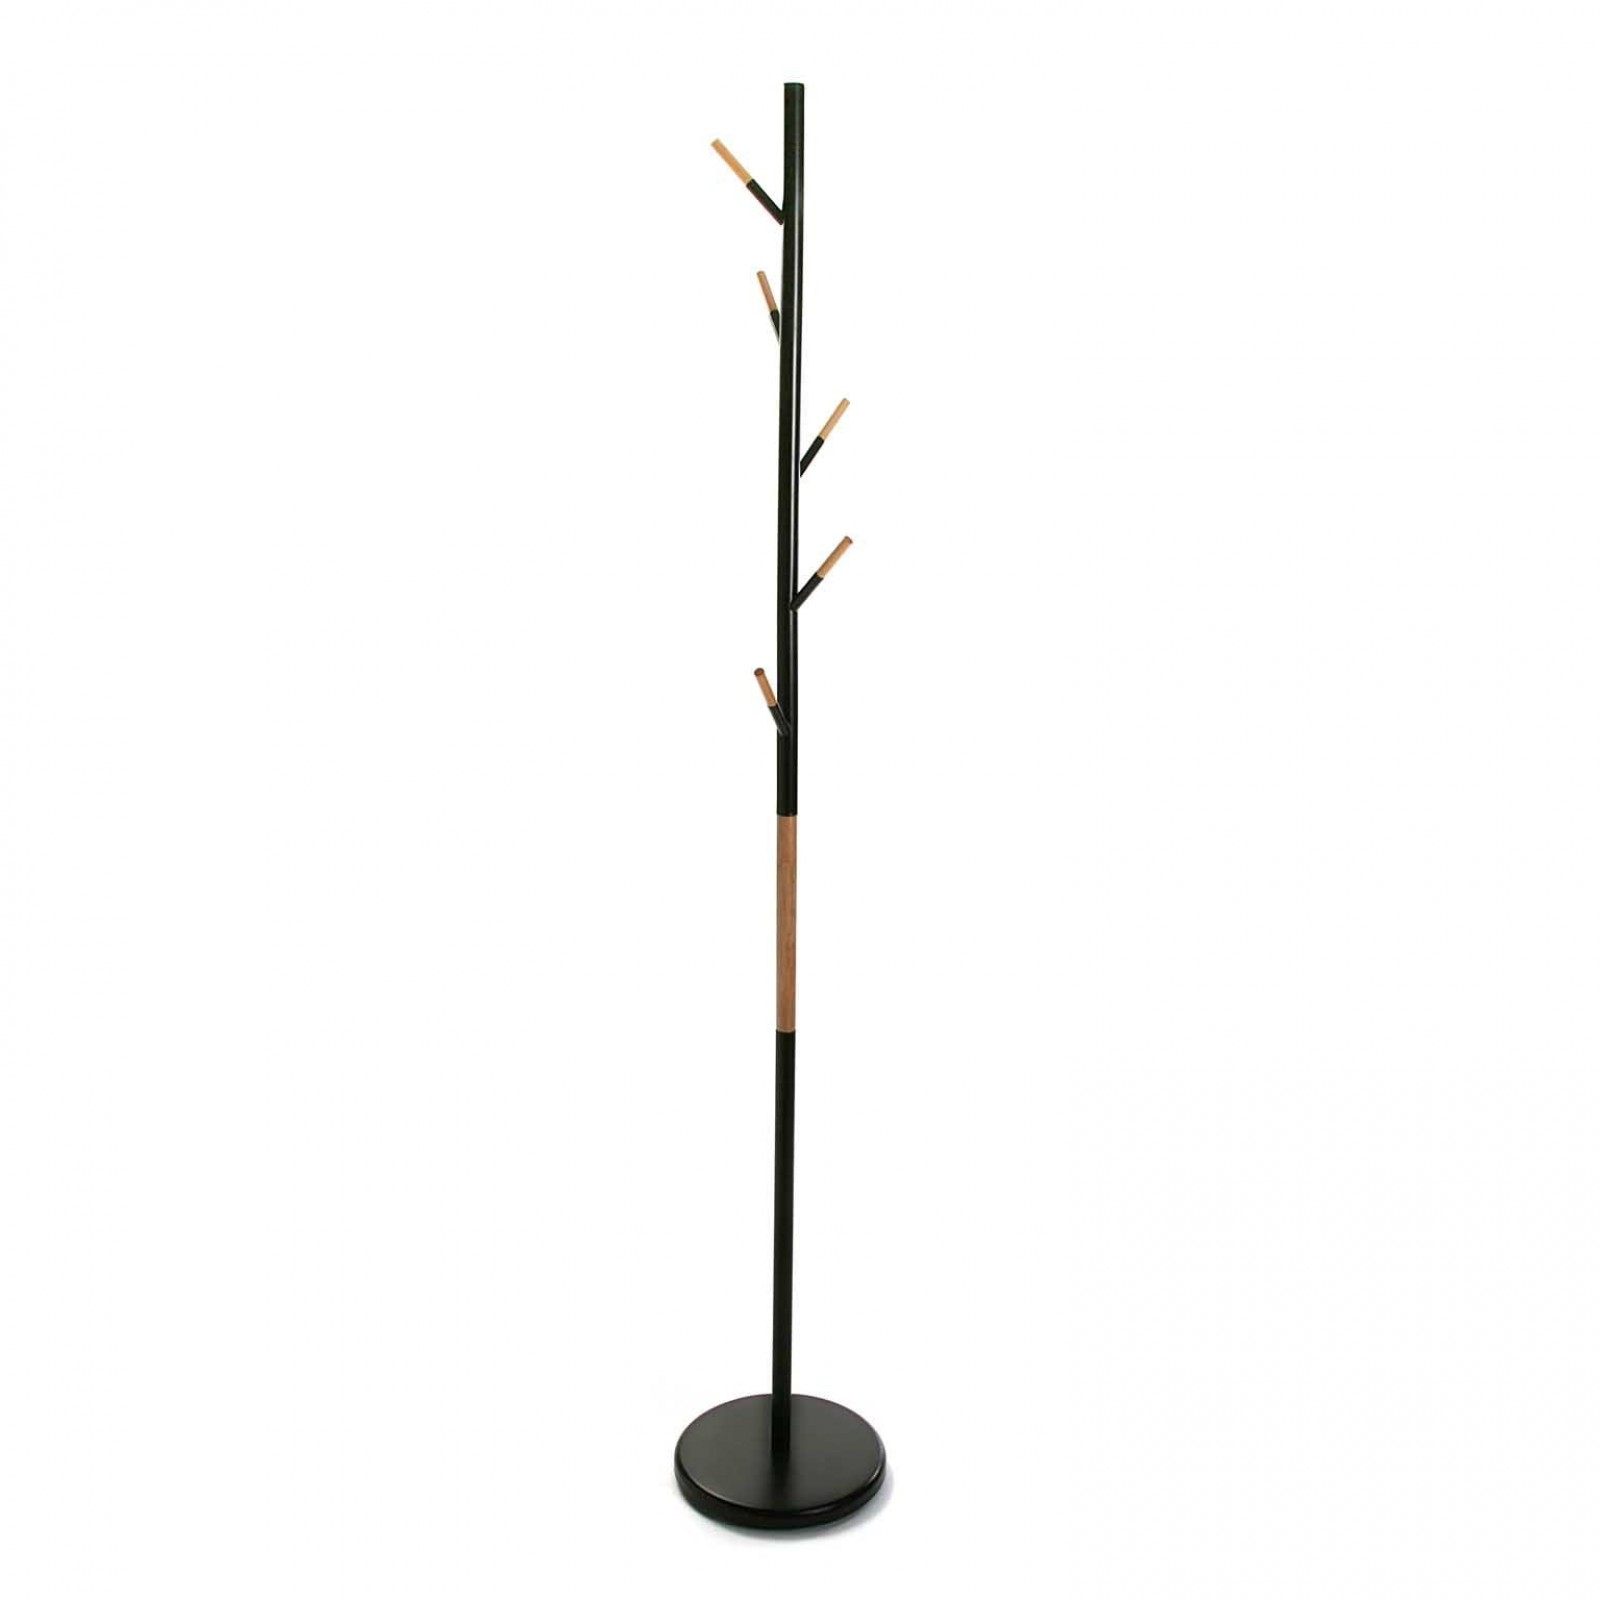 Negrito Coat Rack (Metal / Wood) - Versa